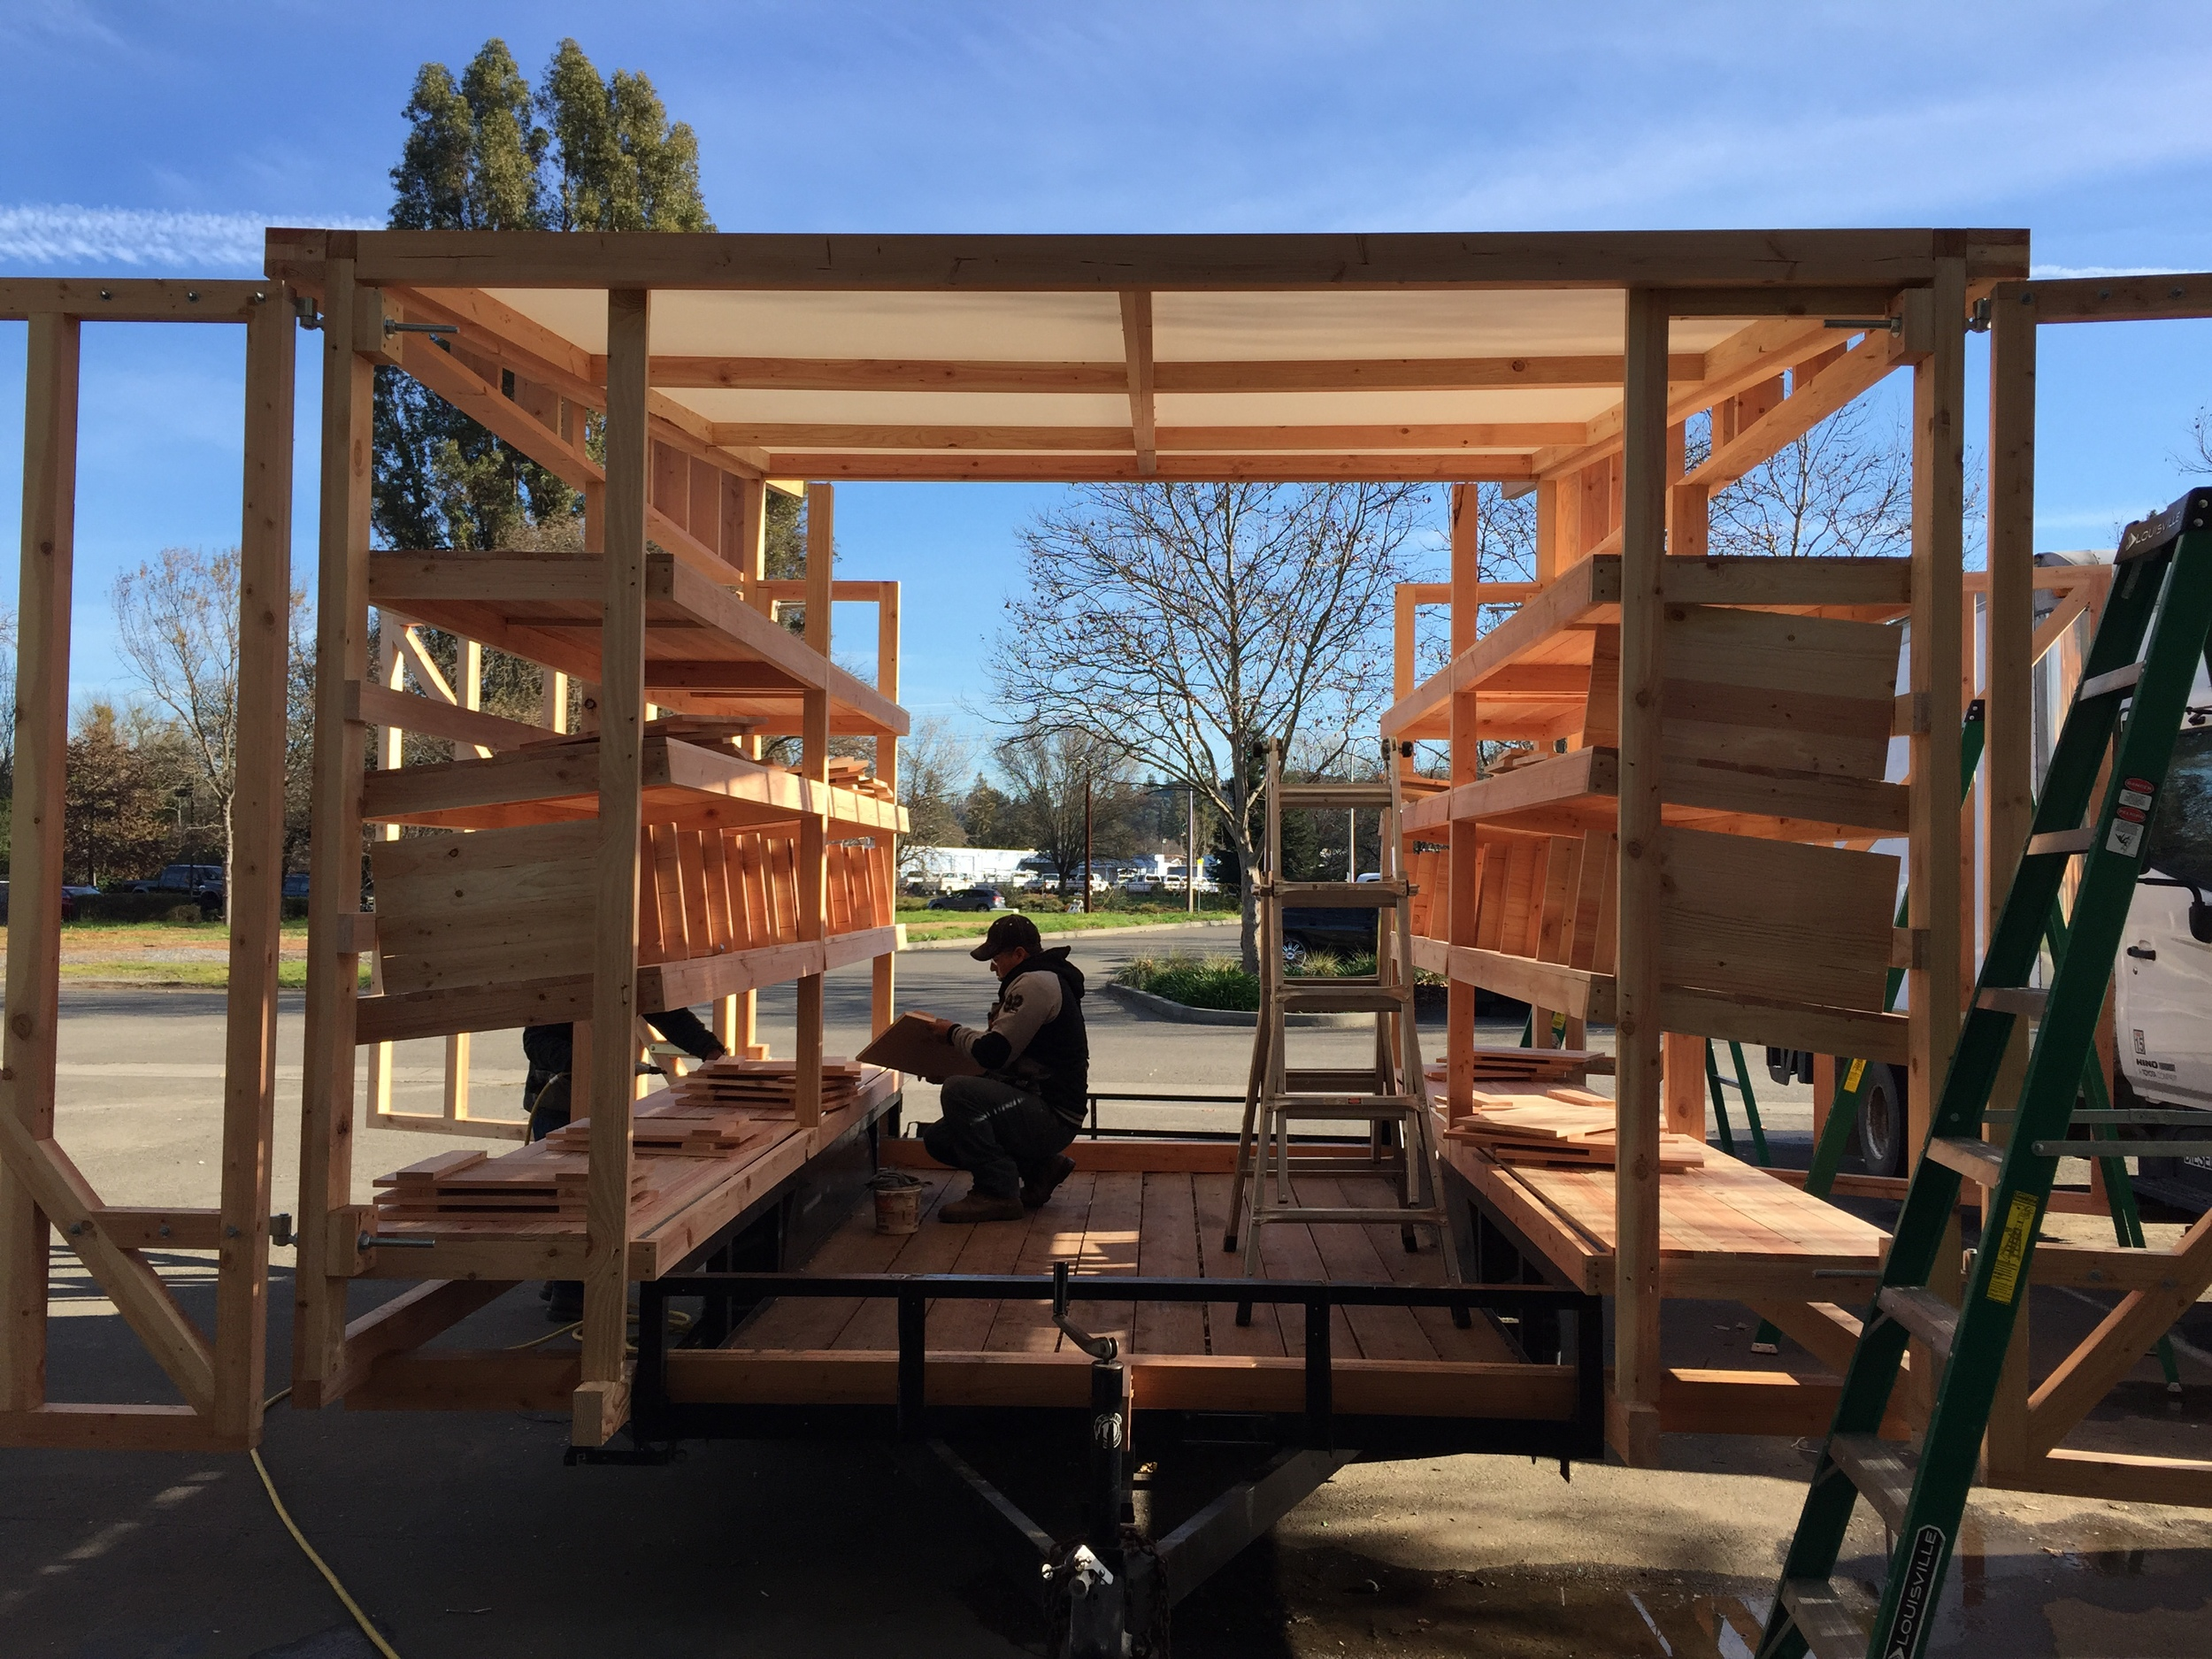 The chicken tractor in the process of being built at the wood shop in town. We built it on a 2 axle trailer.